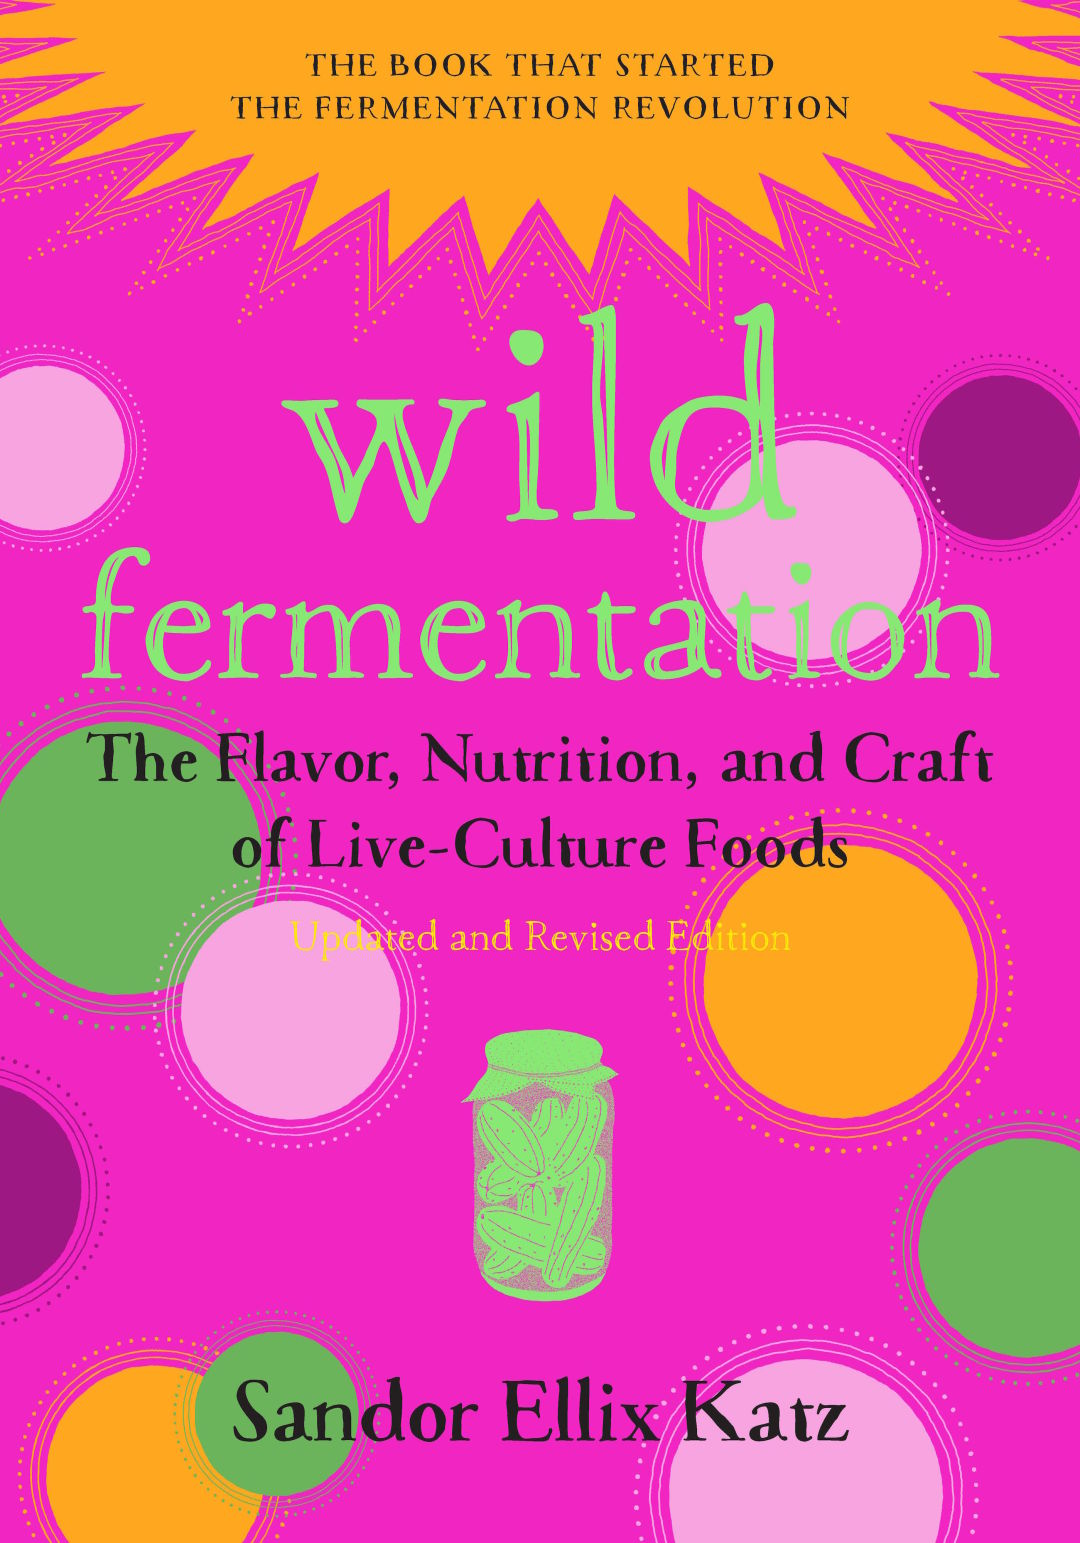 Wildfermentation2nd frontcover elpiw4